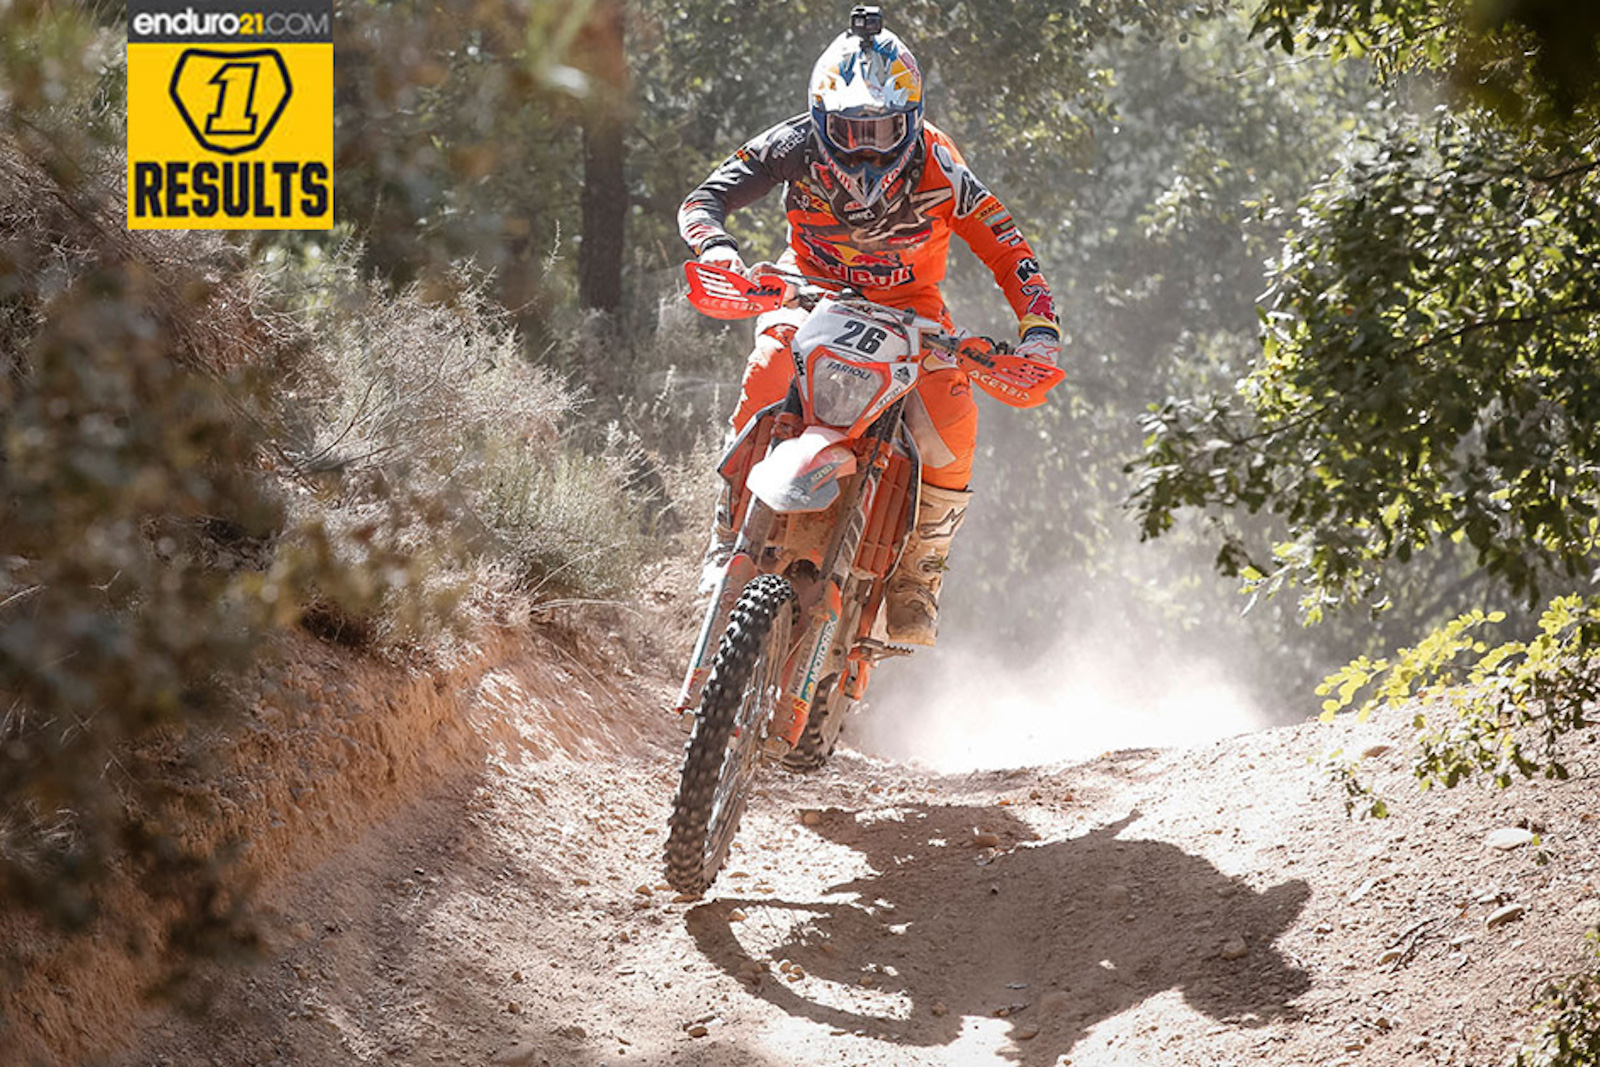 Results feed: WESS win for Josep Garcia on opening day at BR2 Enduro Solsona